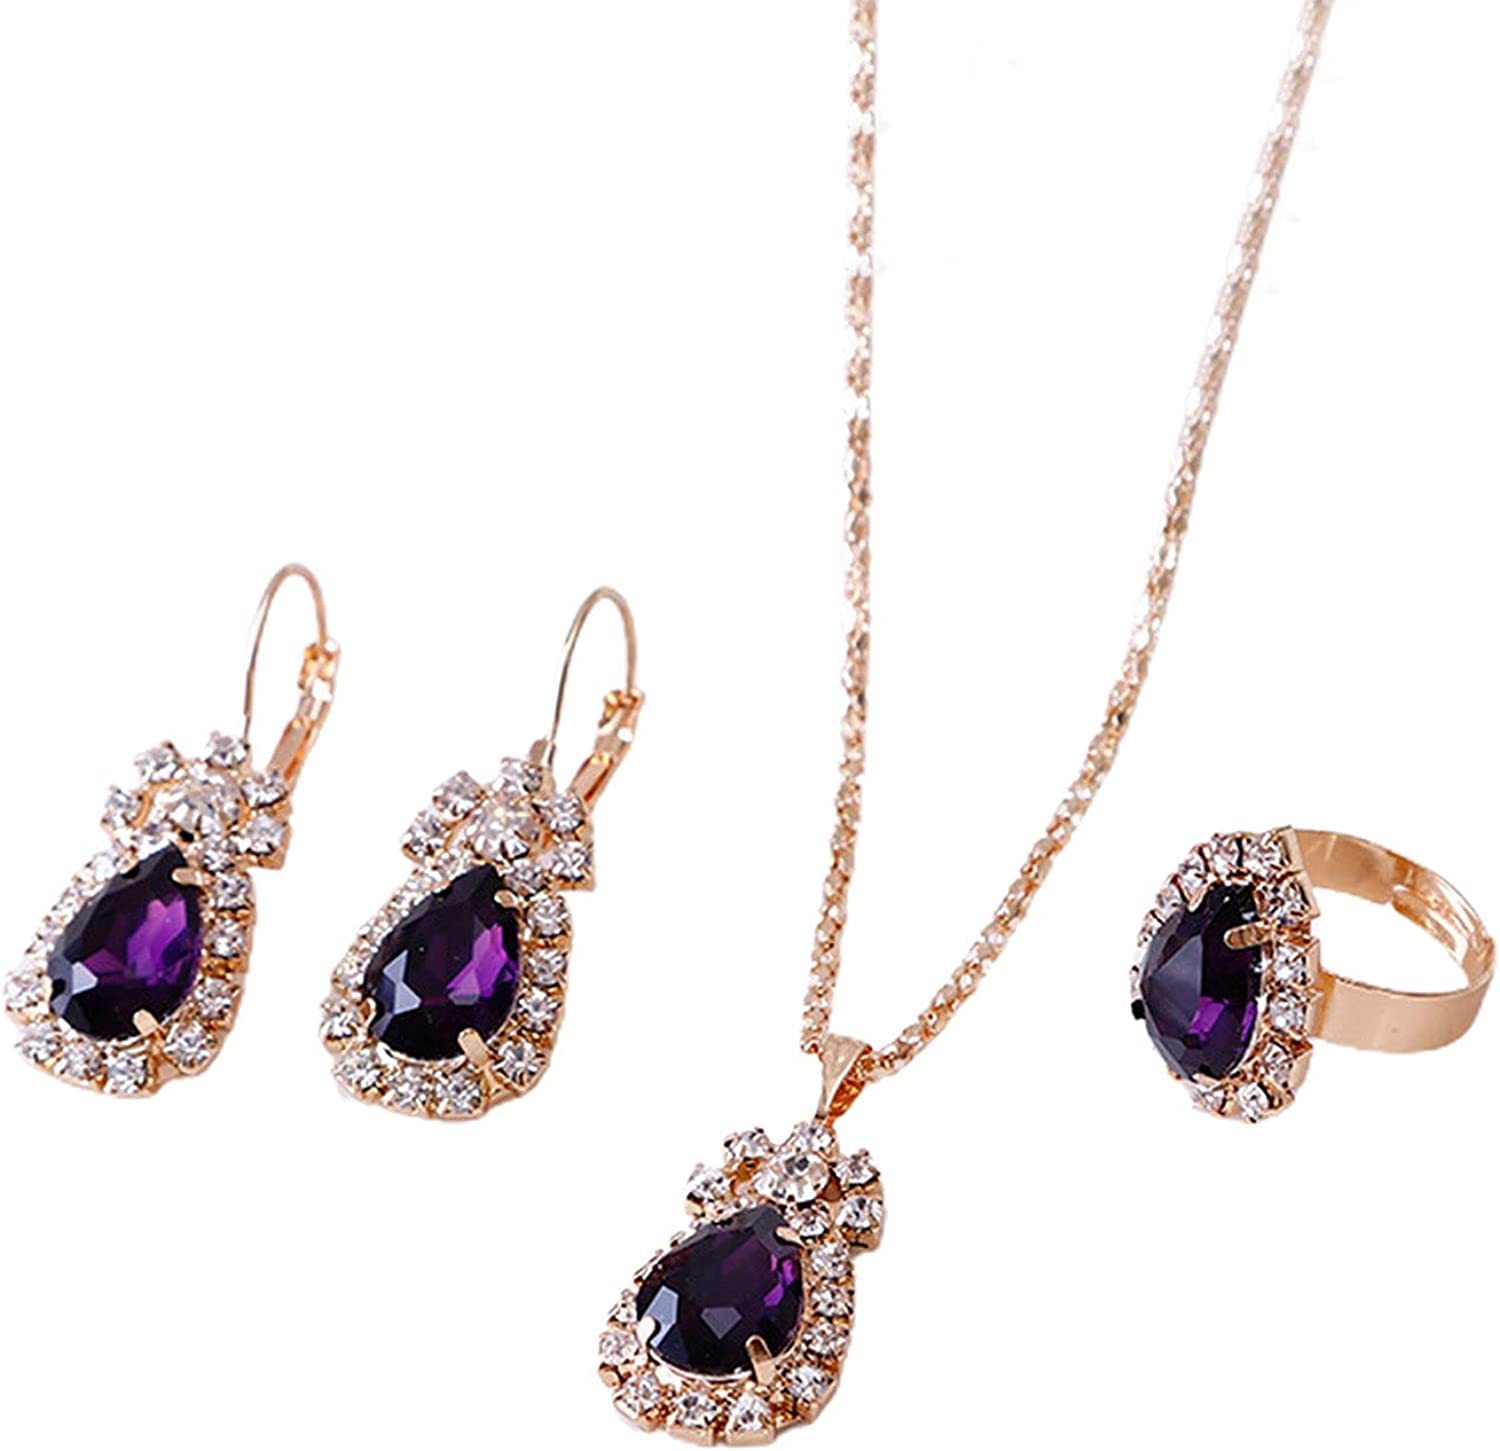 Women's Fashion Jewelry Sets, 3Pcs/Set Women Water Drop Bright Alloy Rhinestone Pendant Necklace Earrings Ring Jewelry Set for Valentine Day